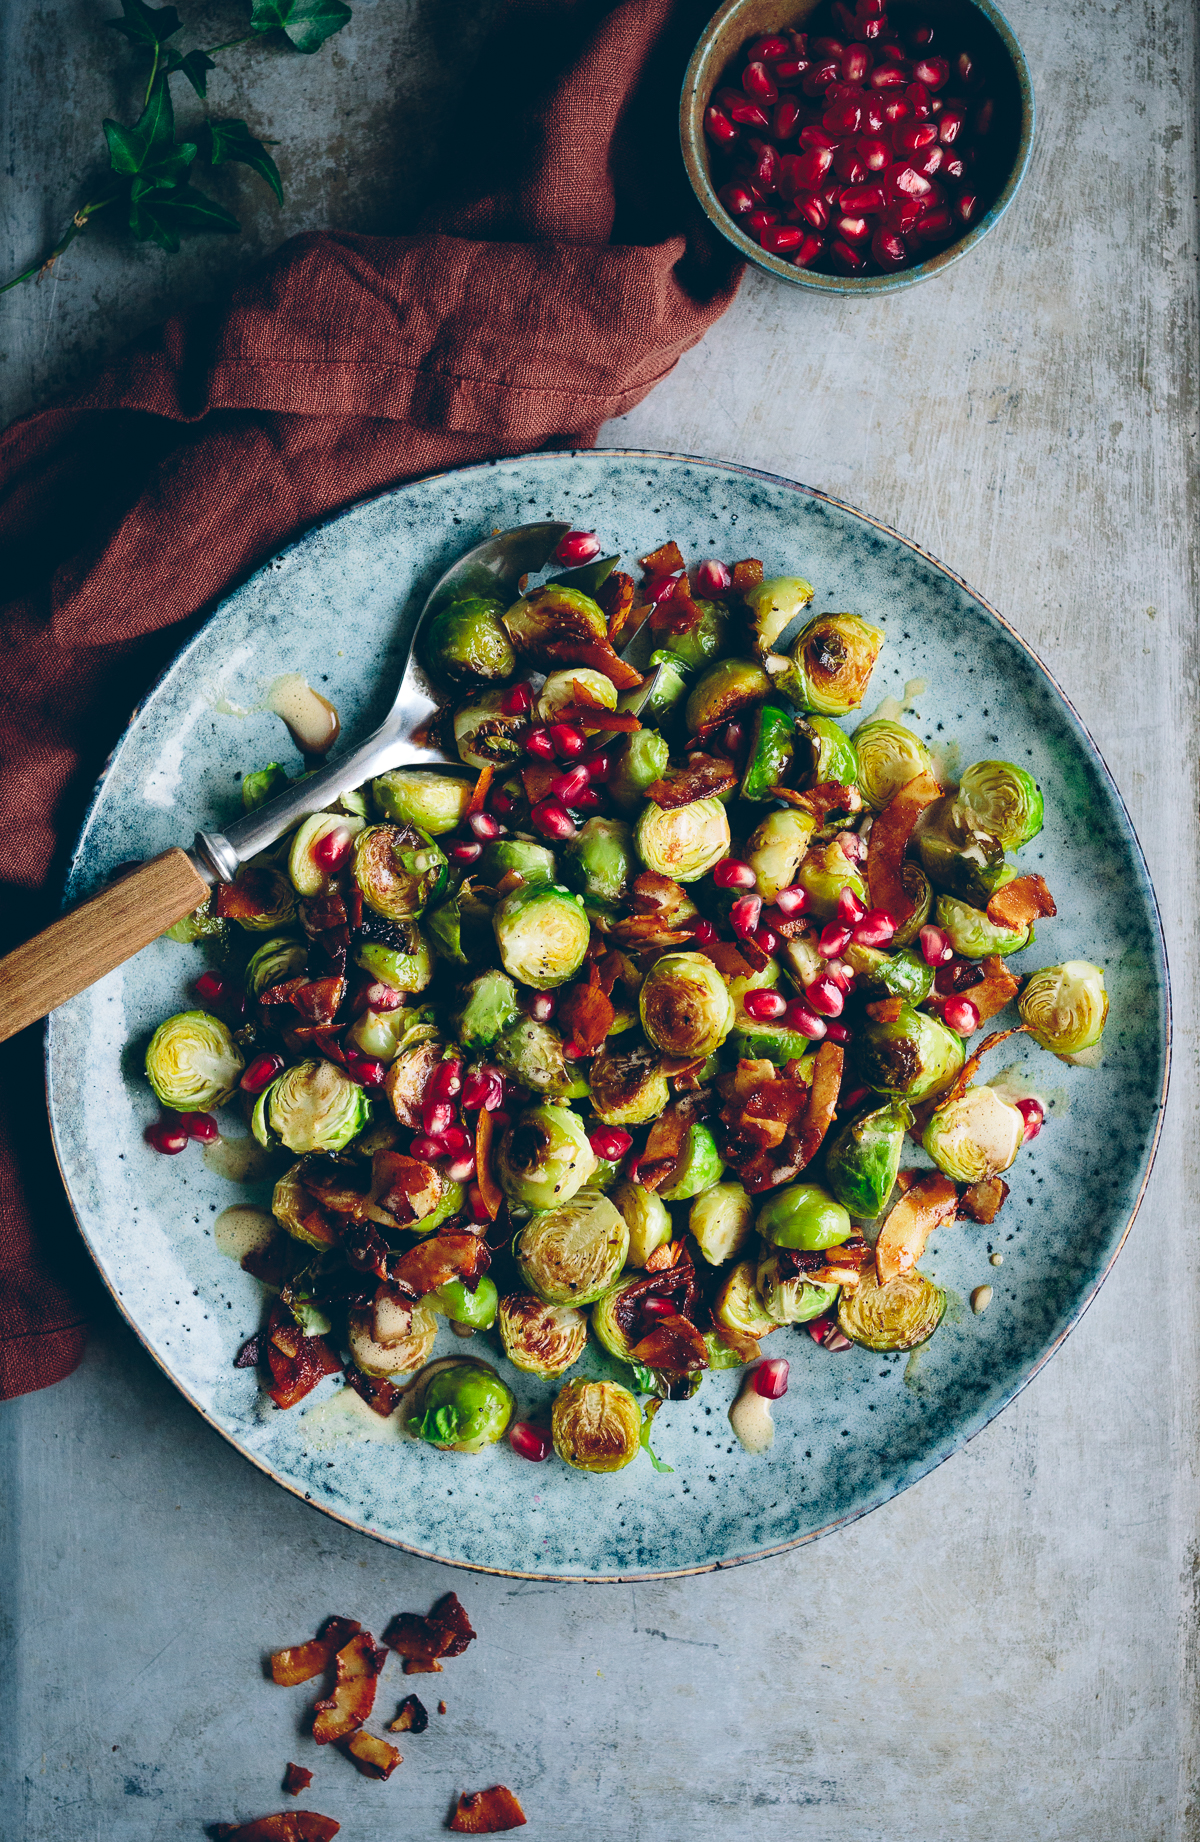 Roasted Brussel Spouts with Coconut Bacon, Pomegranate & Orange Almond Dressing | Cashew Kitchen